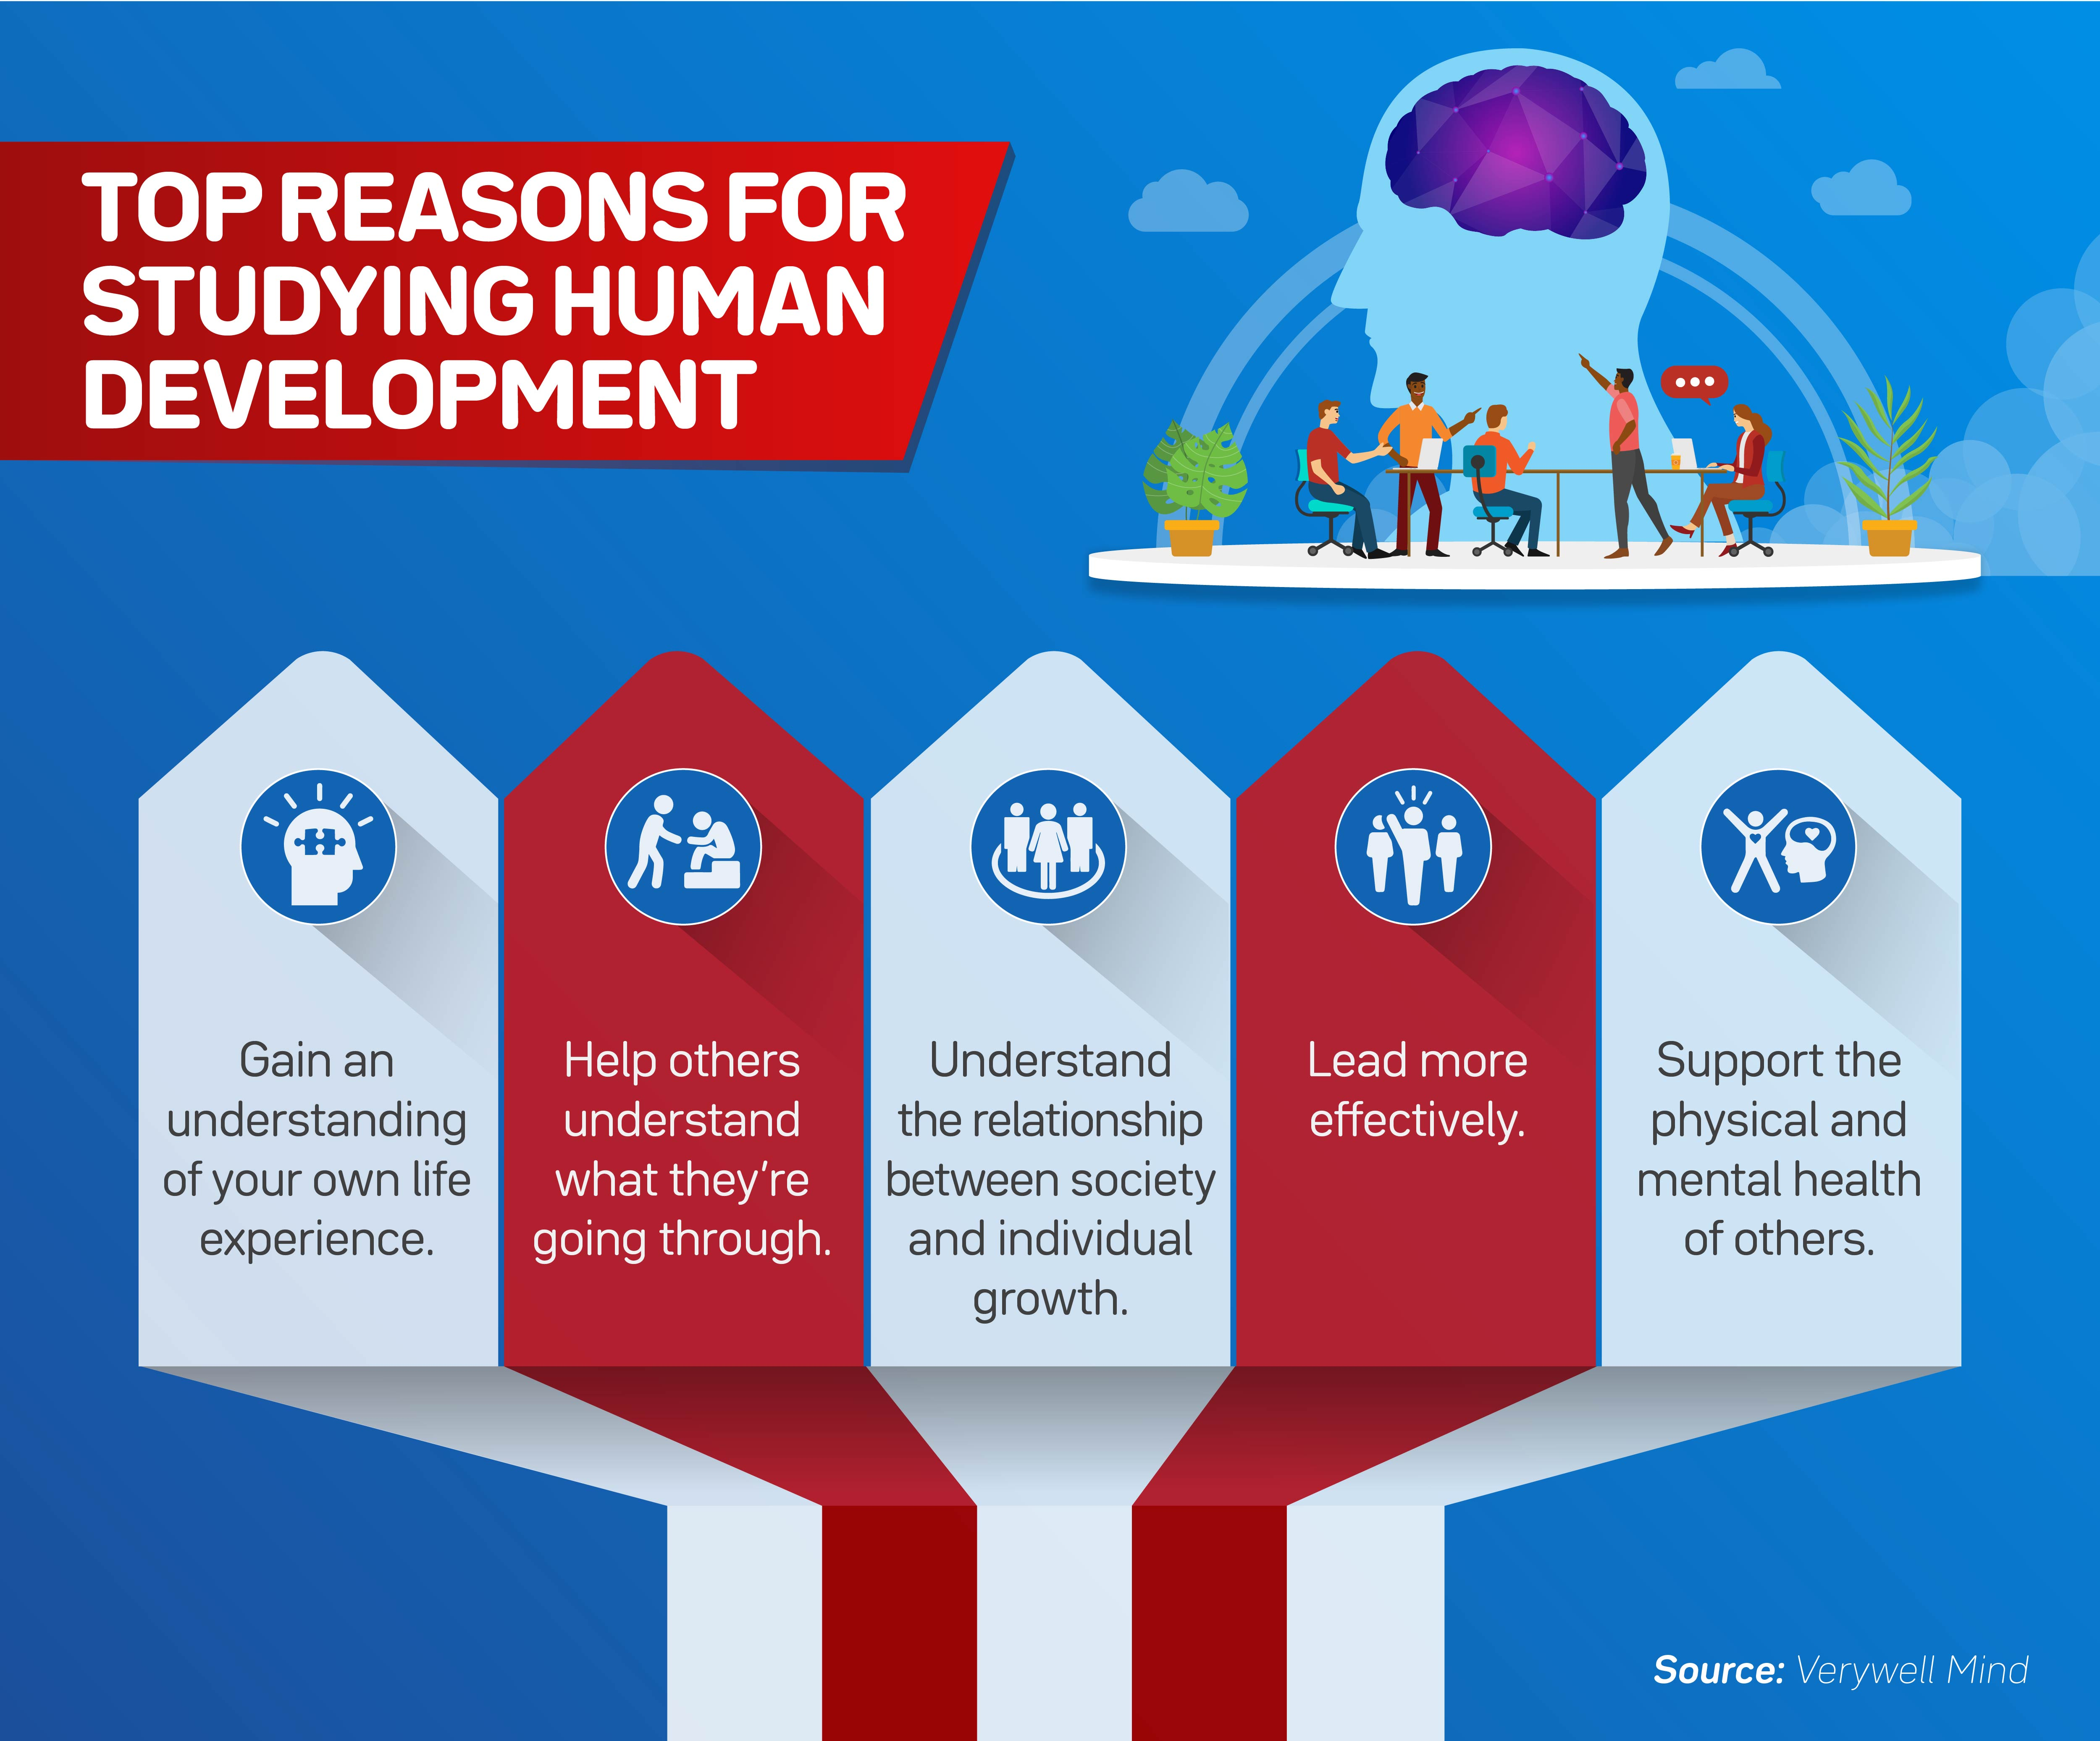 A horizontal list of five top reasons for studying human development